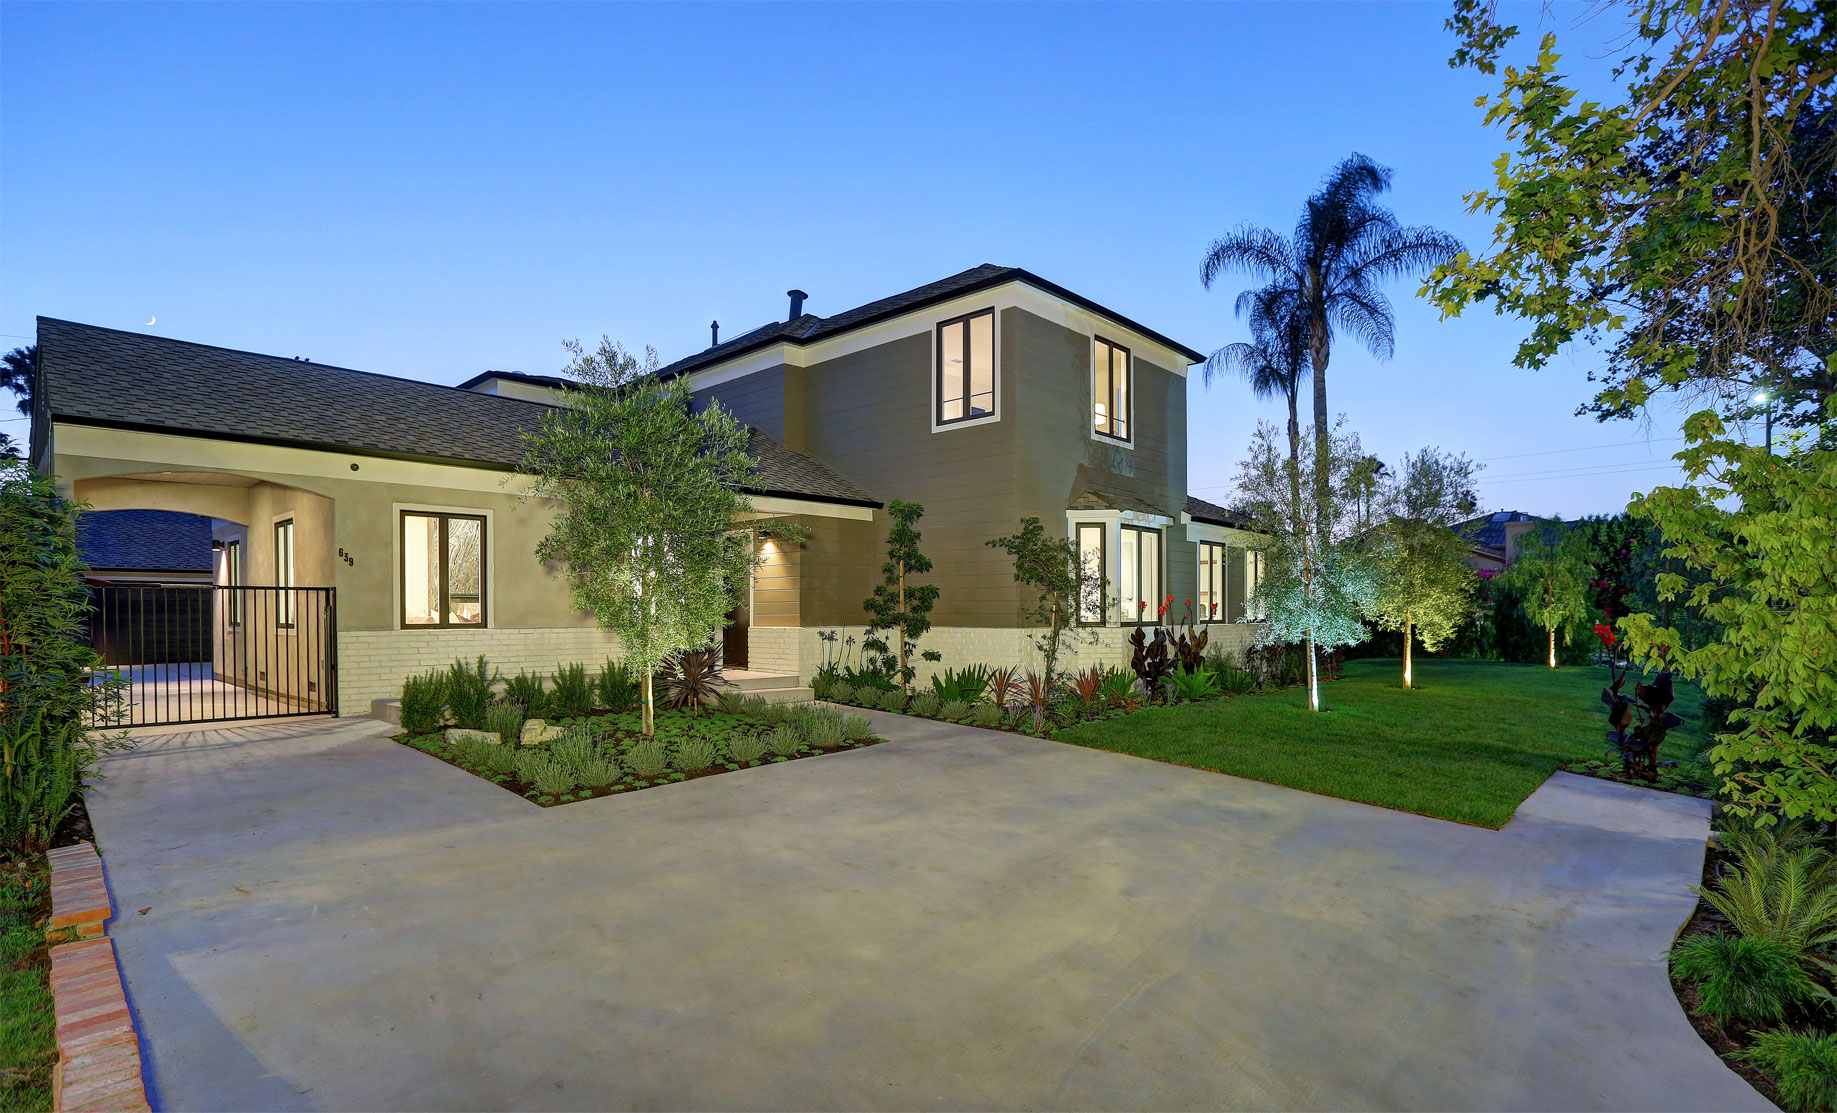 Custom Homes Built With Distinction